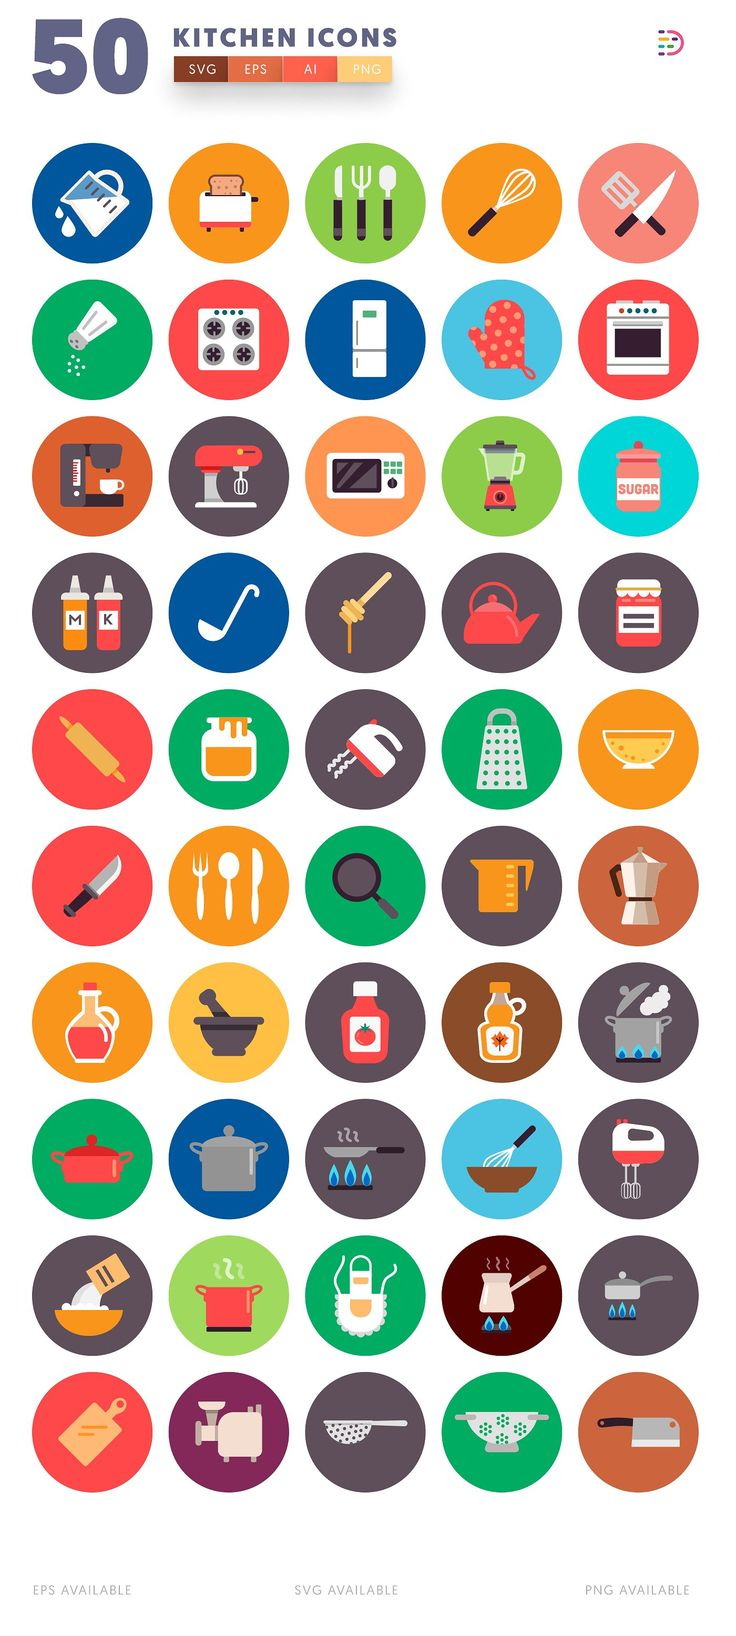 50 Kitchen Icons by Dighital on @creativemarket kitchen icons, kitchen and cooking icons, kitchen shower icons, kitchen and cook icons, kitchen collection, kitchen utensils, set icons kitchen, cooking icons, kitchen icon set, kitchen vectors, kitchen icon set, kitchen elements, food icons, cooking, kitchen vector, kitchen cutlery, cooking clipart, cooking icons flat